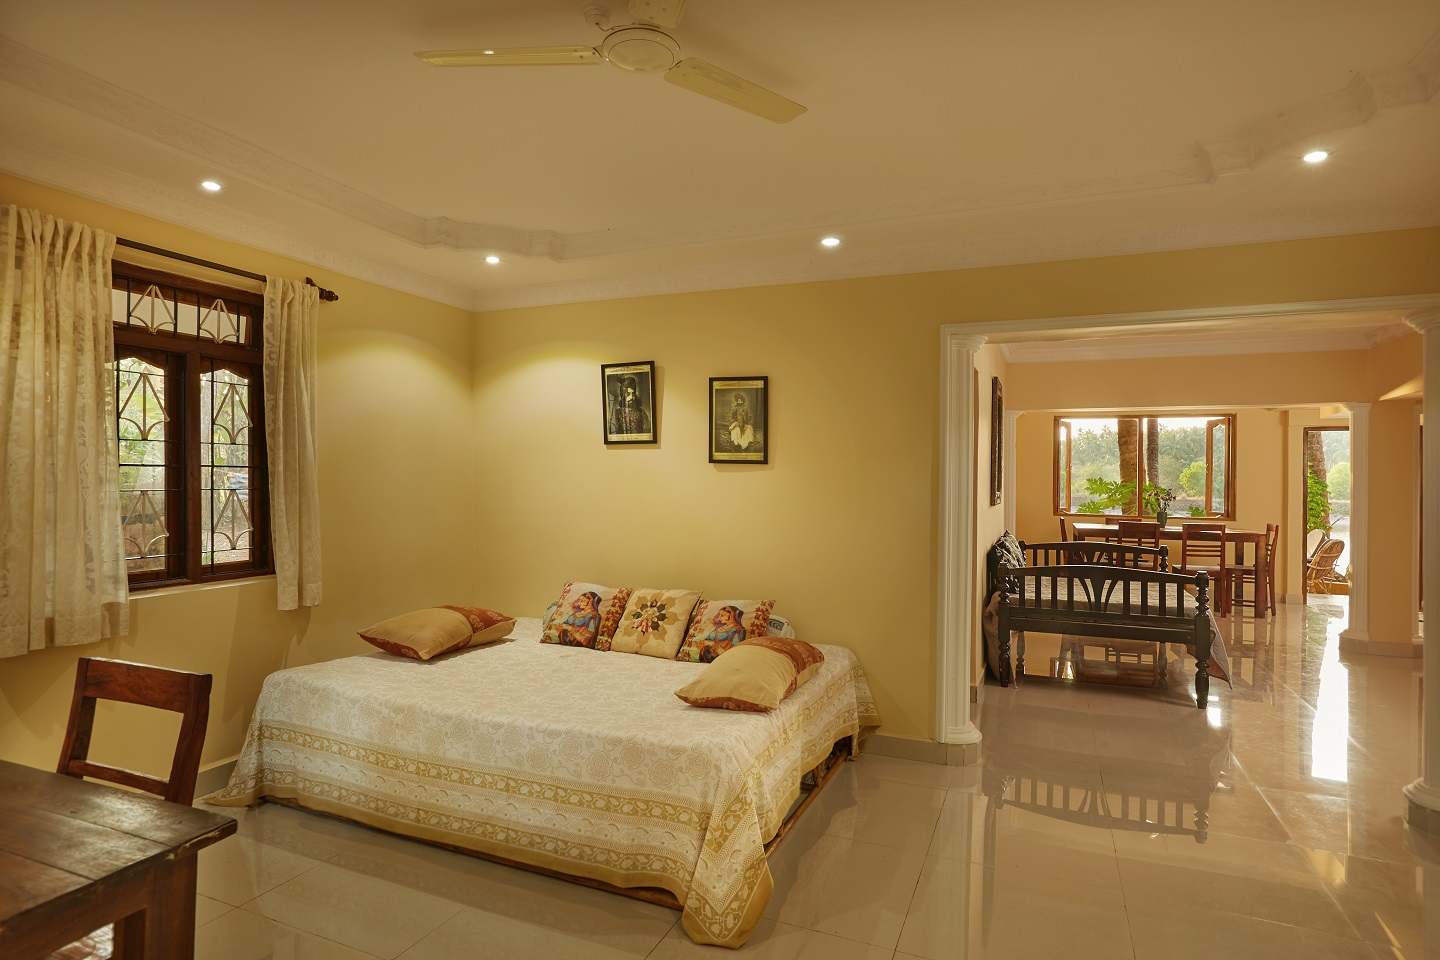 Two Bedroom Self-Service AC Apartment, Talpona, Goa living and dining room